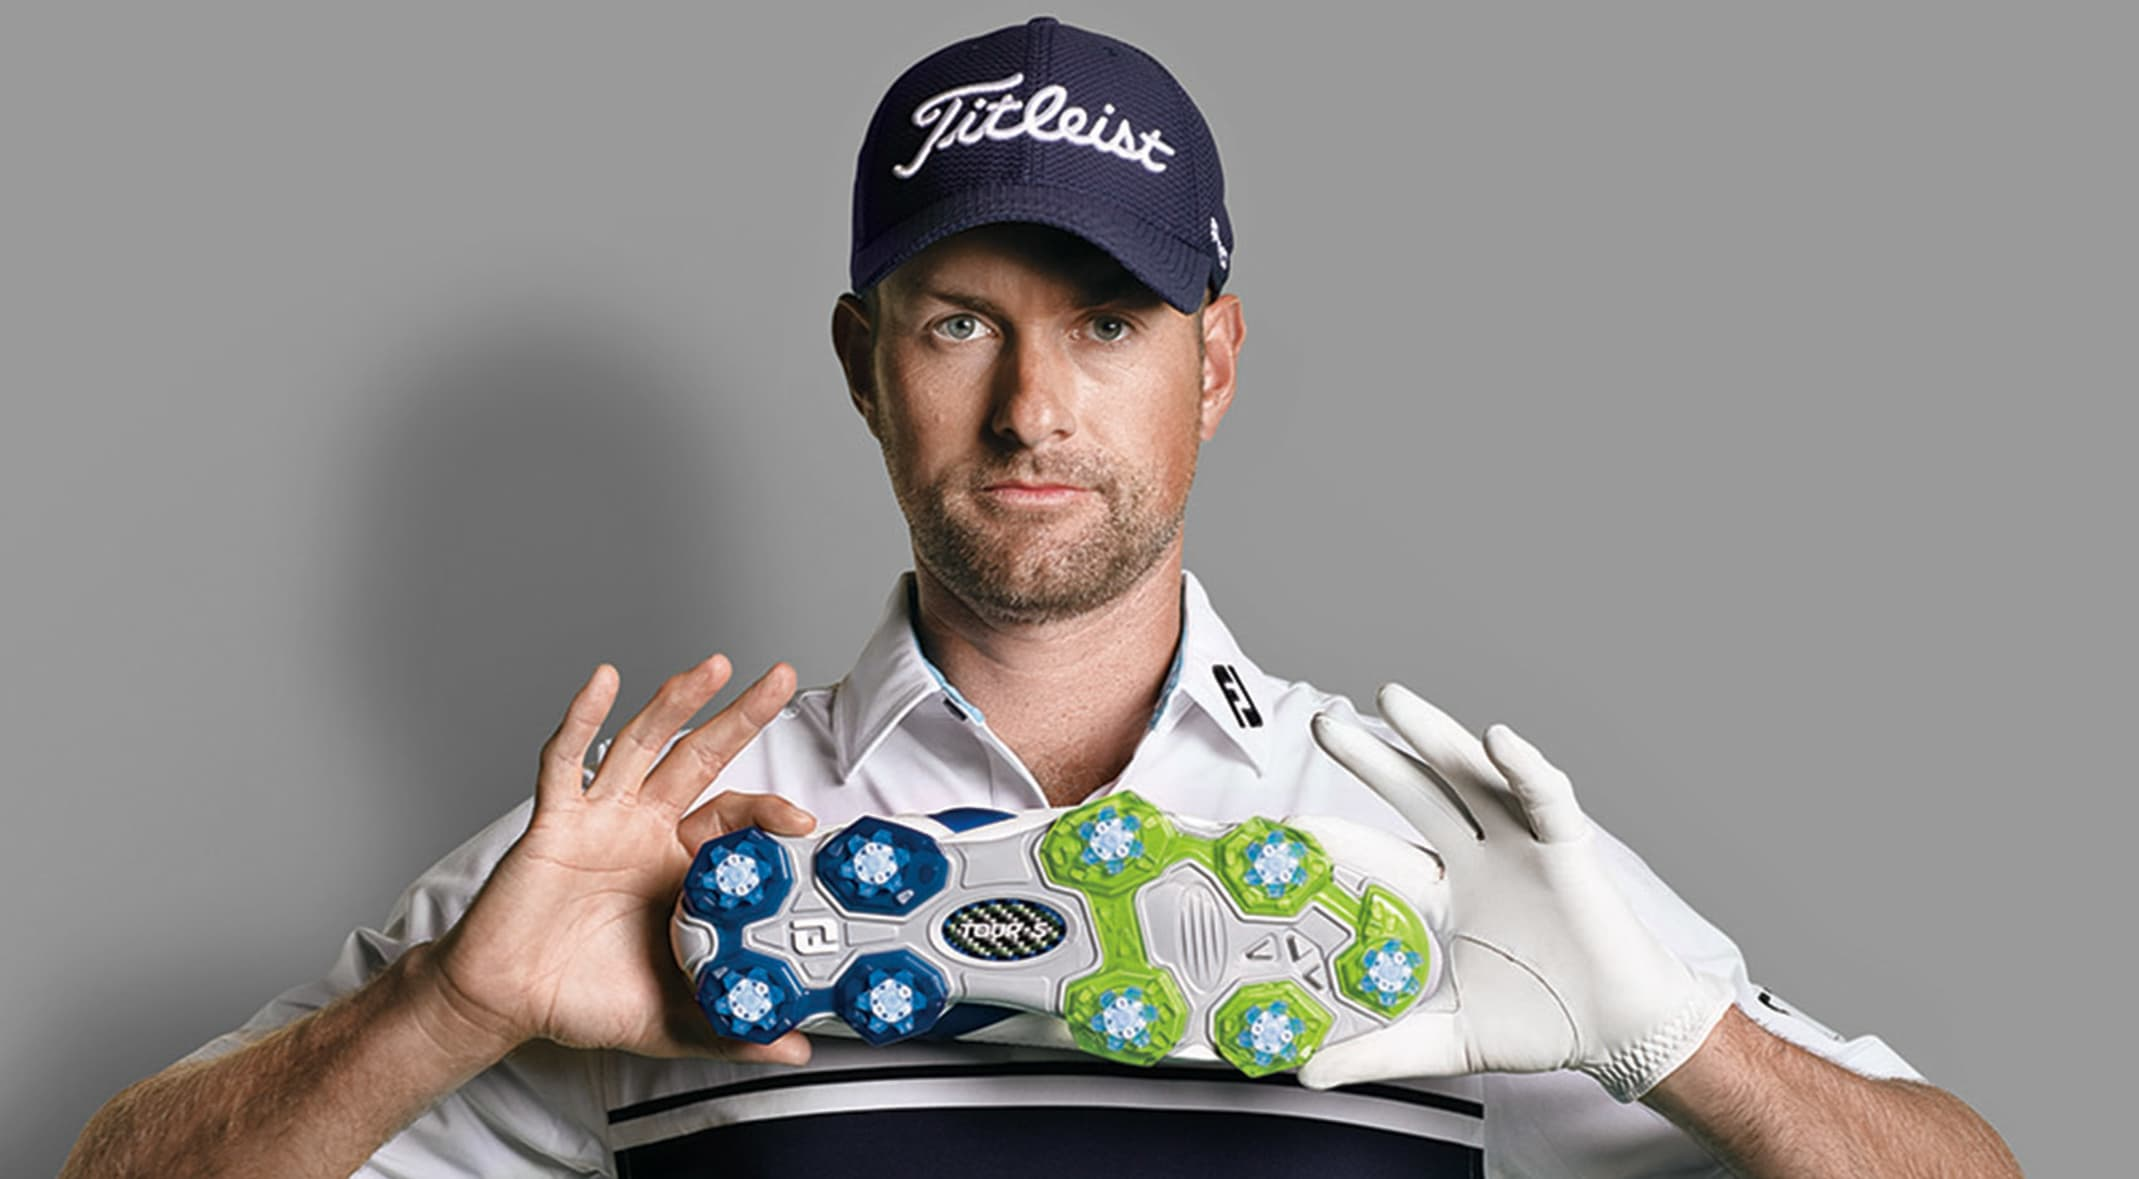 849cb599106 FootJoy collaborated with TOUR pros like Webb Simpson to redesign its  latest shoe to provide power